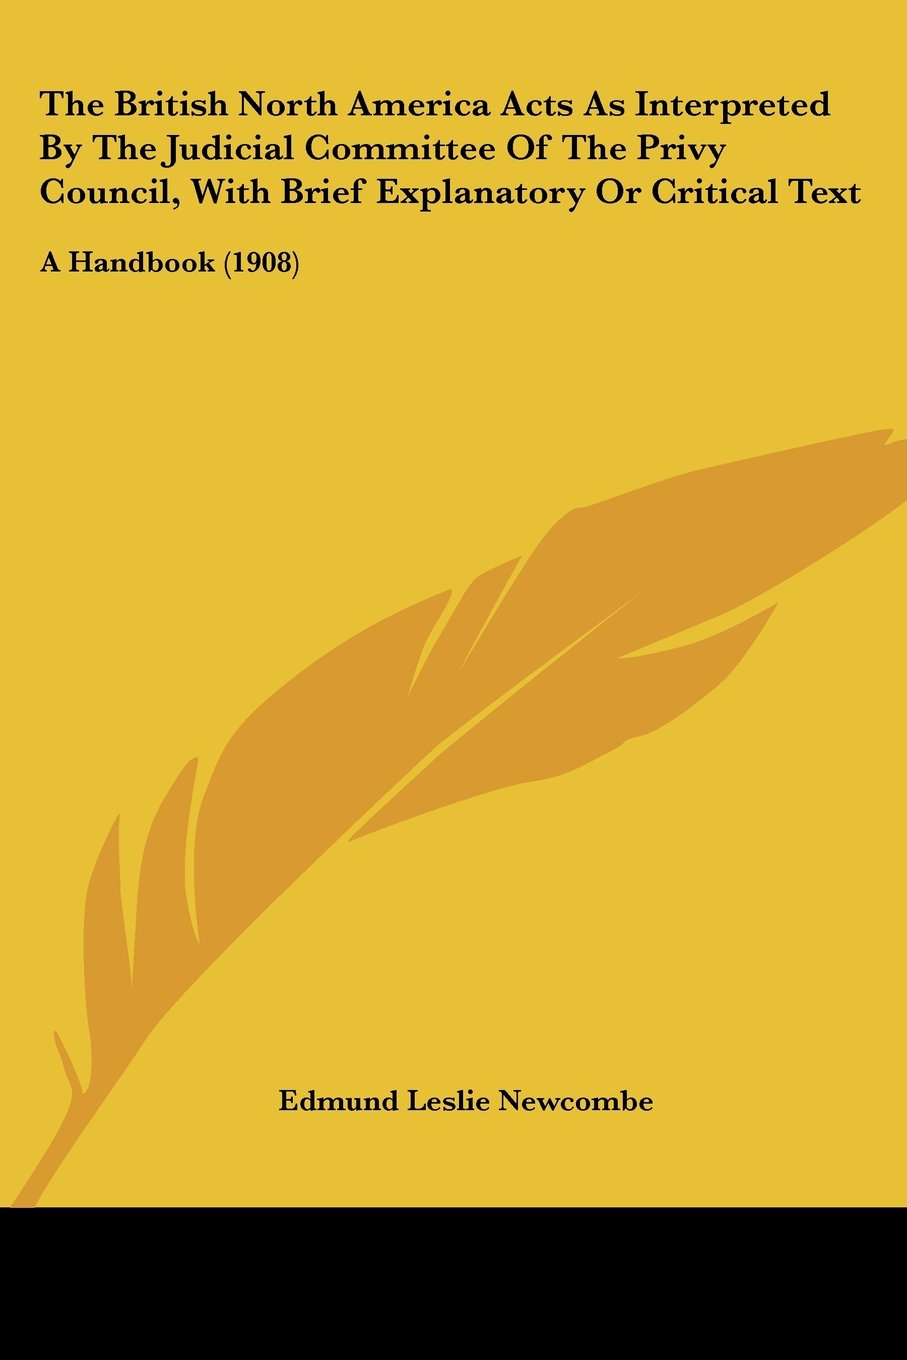 Download The British North America Acts As Interpreted By The Judicial Committee Of The Privy Council, With Brief Explanatory Or Critical Text: A Handbook (1908) (Legacy Reprint) ebook